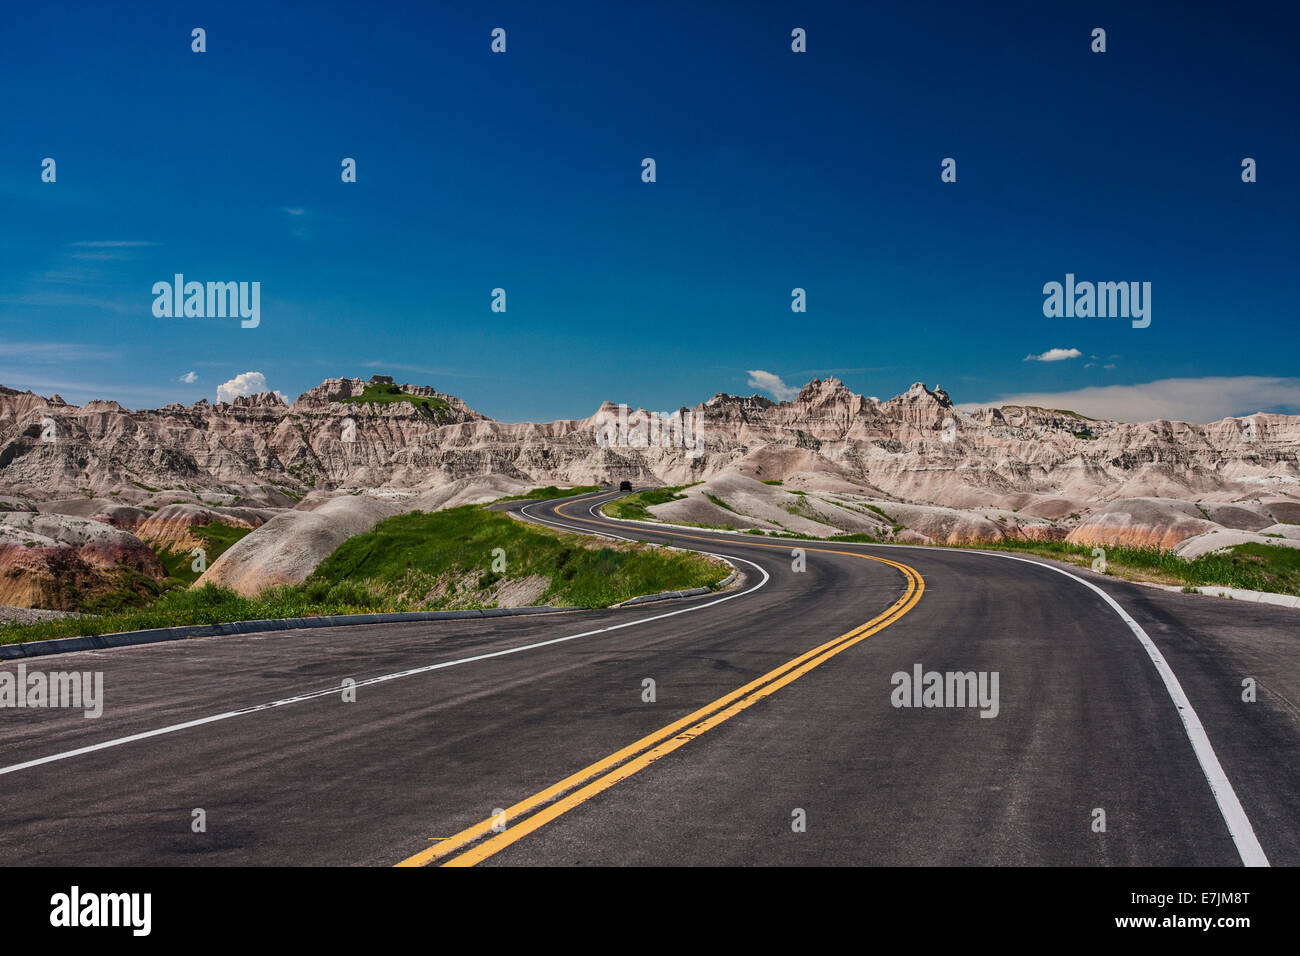 Where will the road take you, Badlands, North Dakota, driving through the rock formations of badlands national park - Stock Image